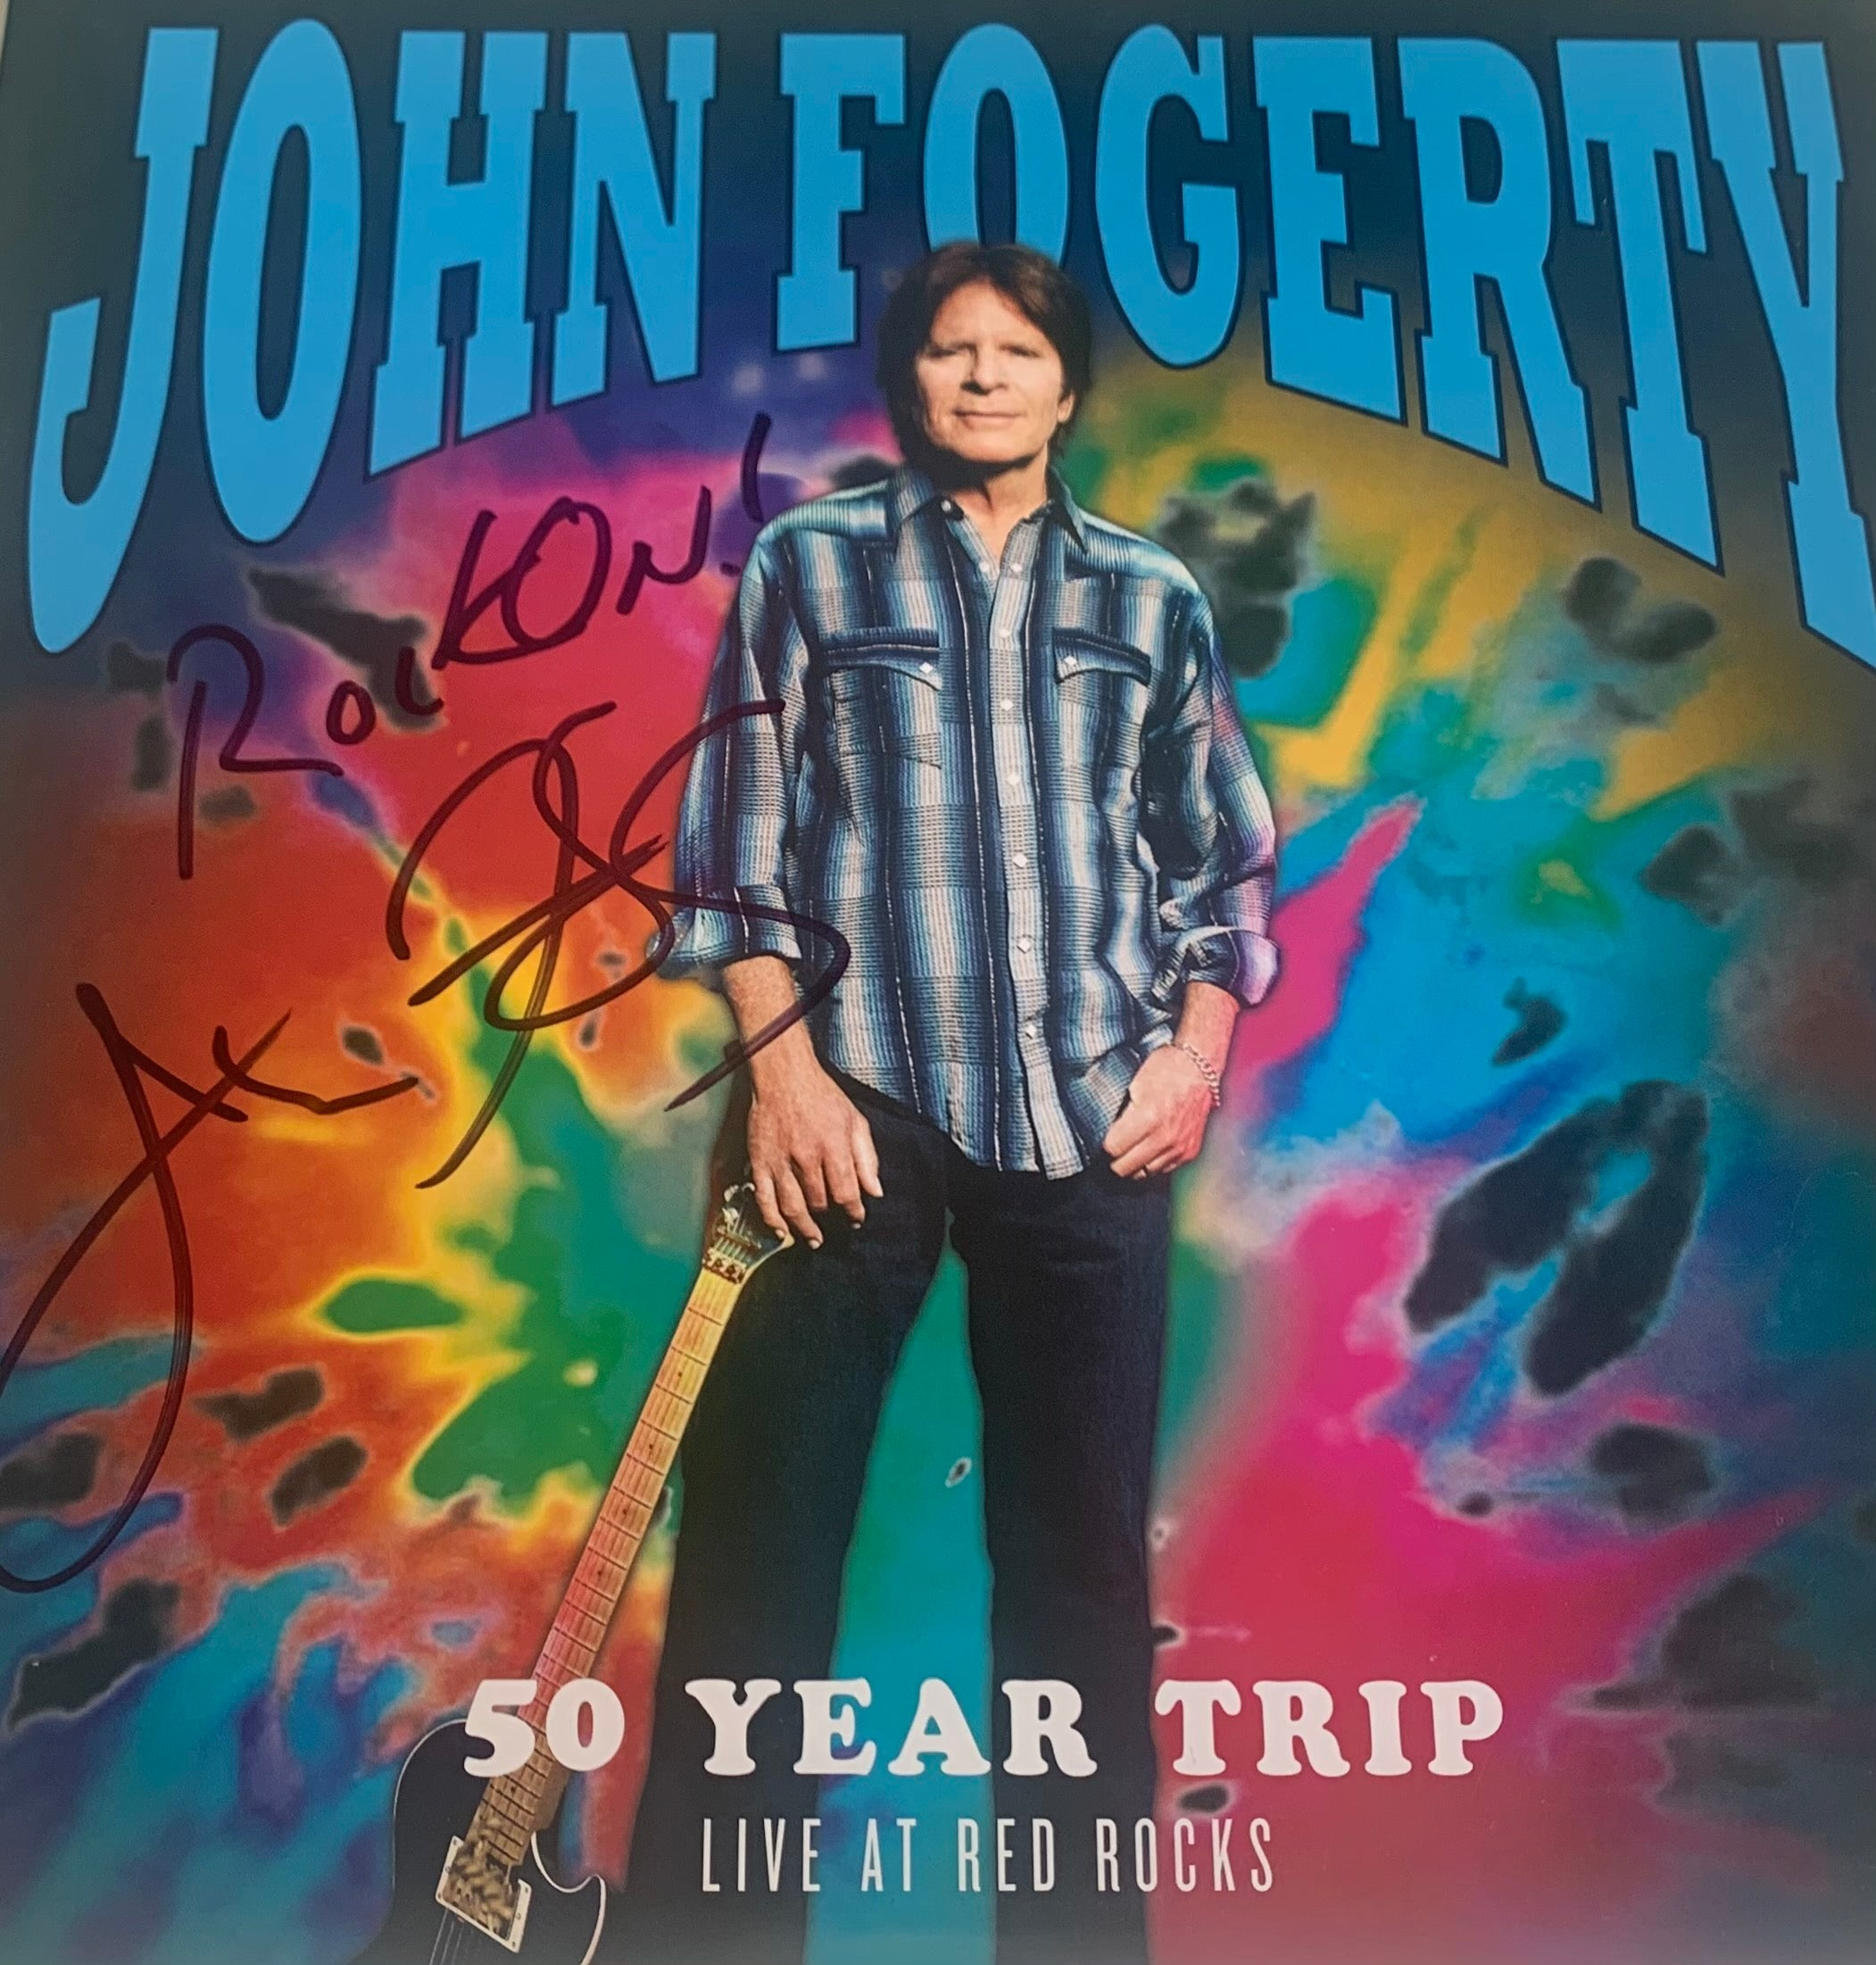 50 Year Trip- Live at Red Rocks Vinyl (Signed By John Fogerty)